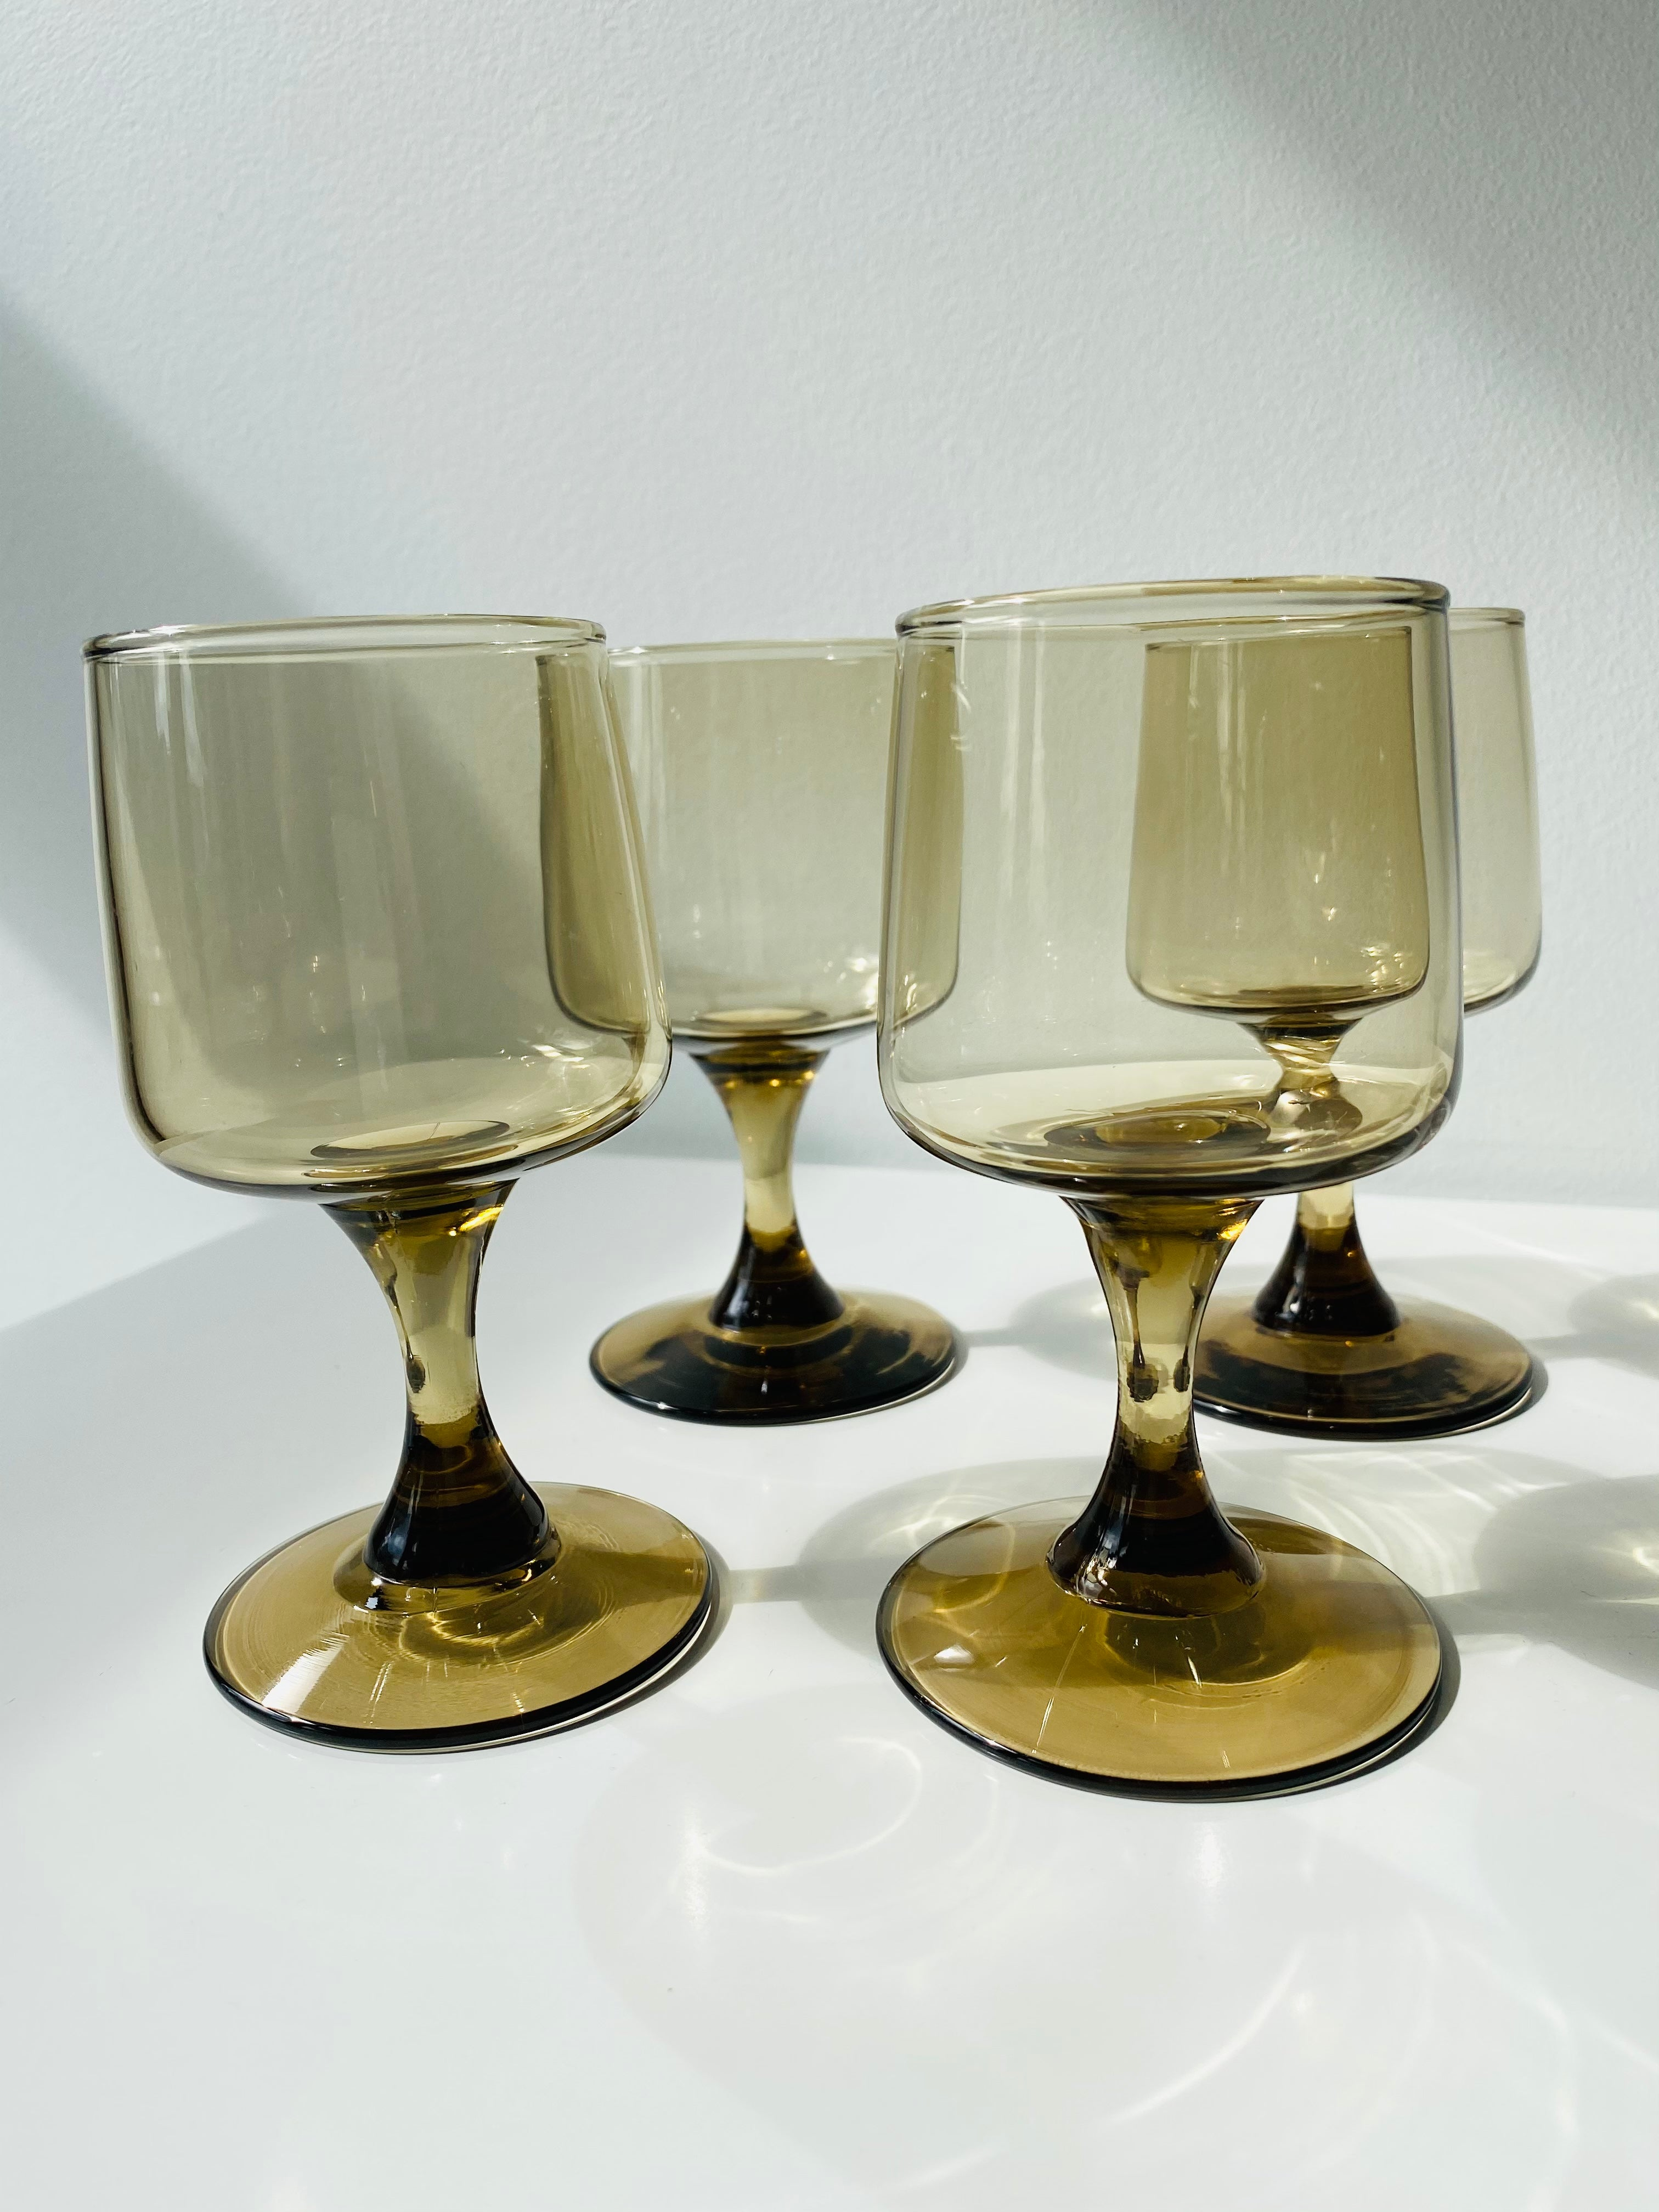 Set of 4 SMALL Libbey smokey wine glasses in Tawny